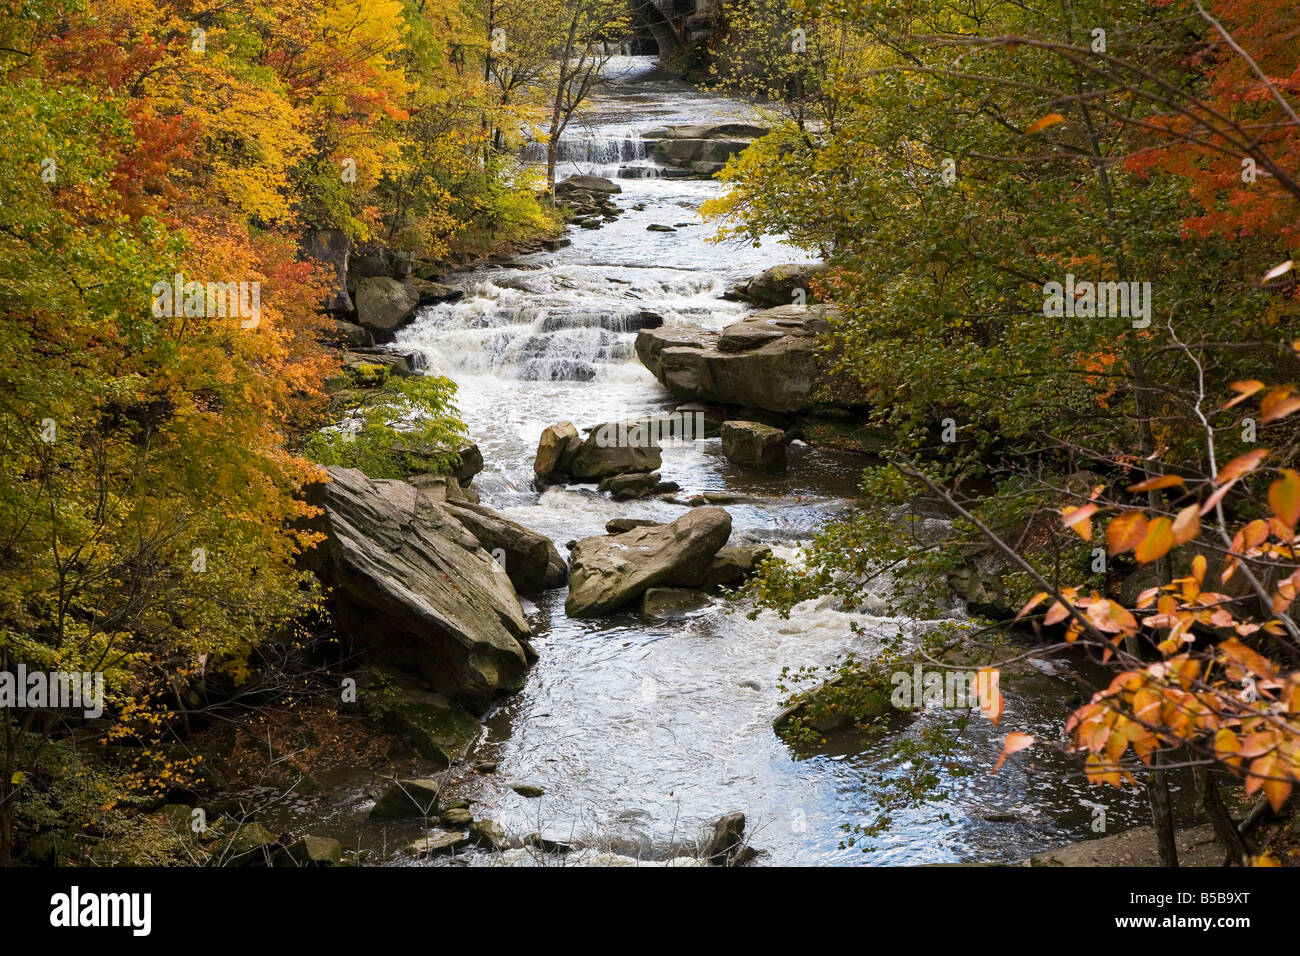 Metropark Stock Photos & Metropark Stock Images - Alamy